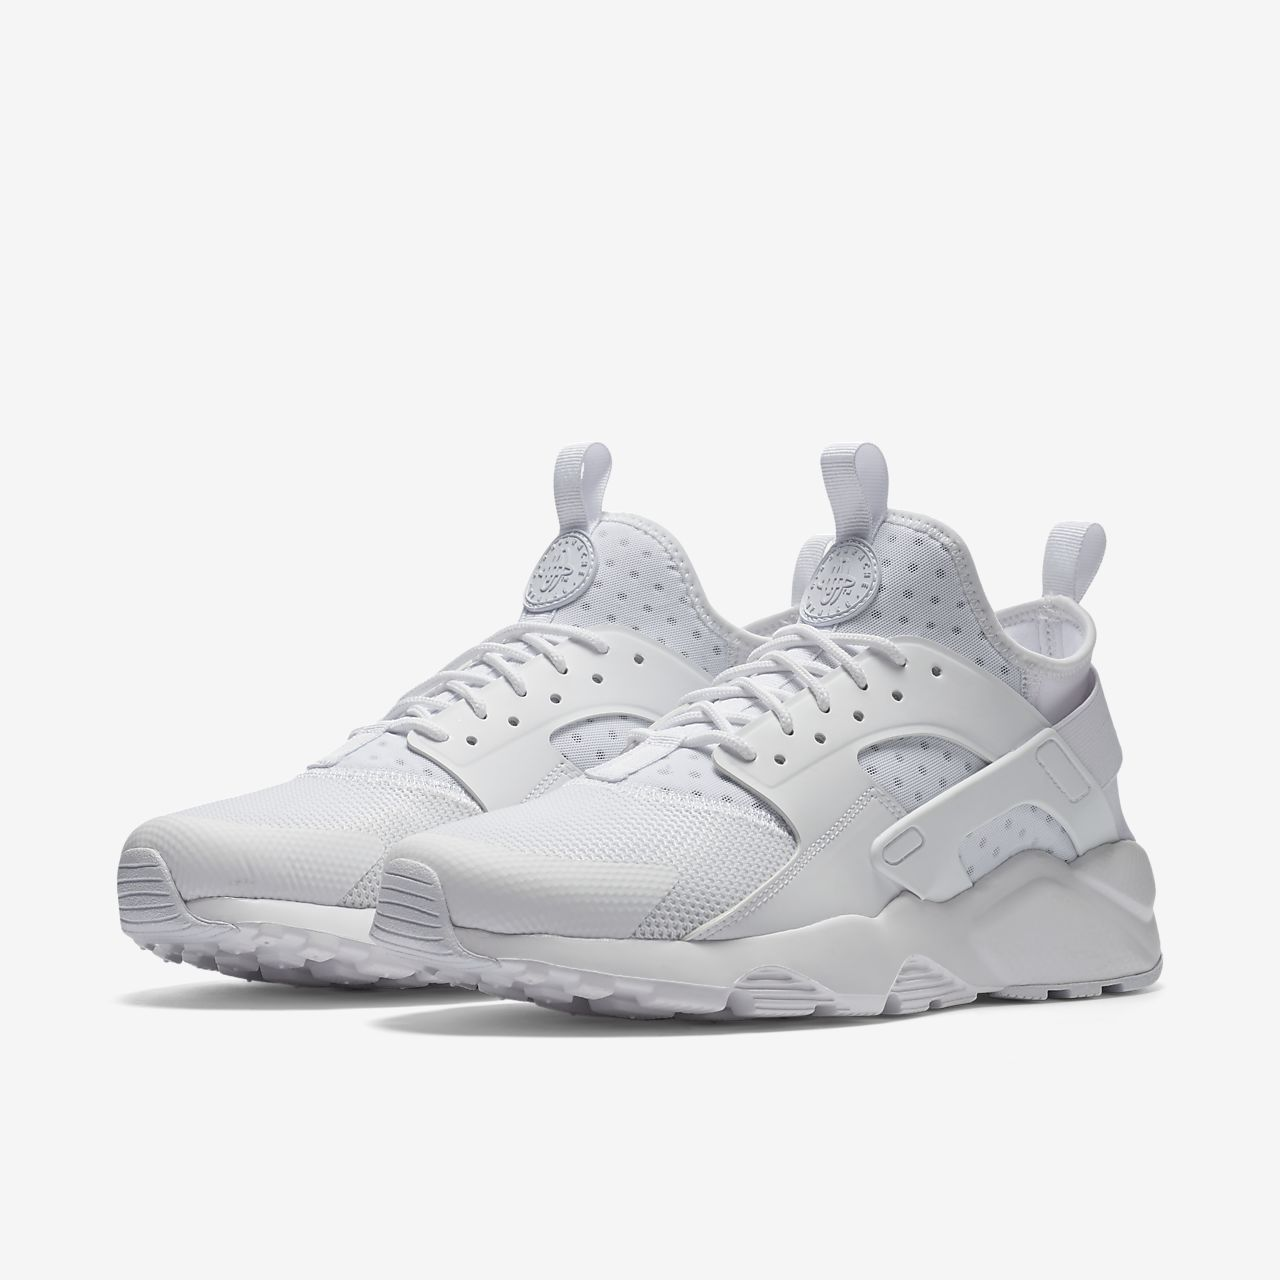 low priced 41513 afee7 ... Calzado para hombre Nike Air Huarache Ultra